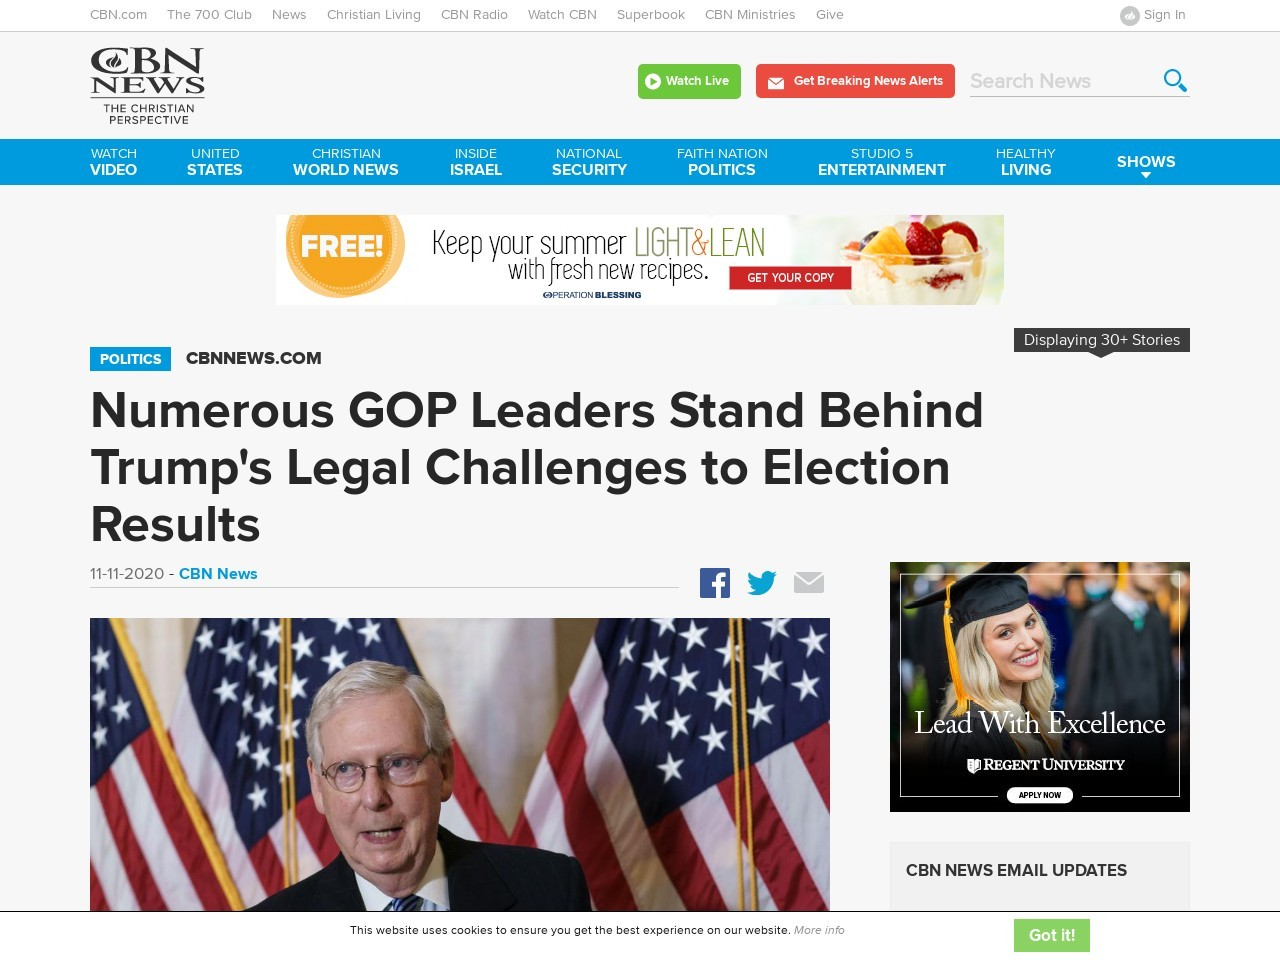 Numerous GOP Leaders Stand Behind Trump's Legal Challenges to Election Results